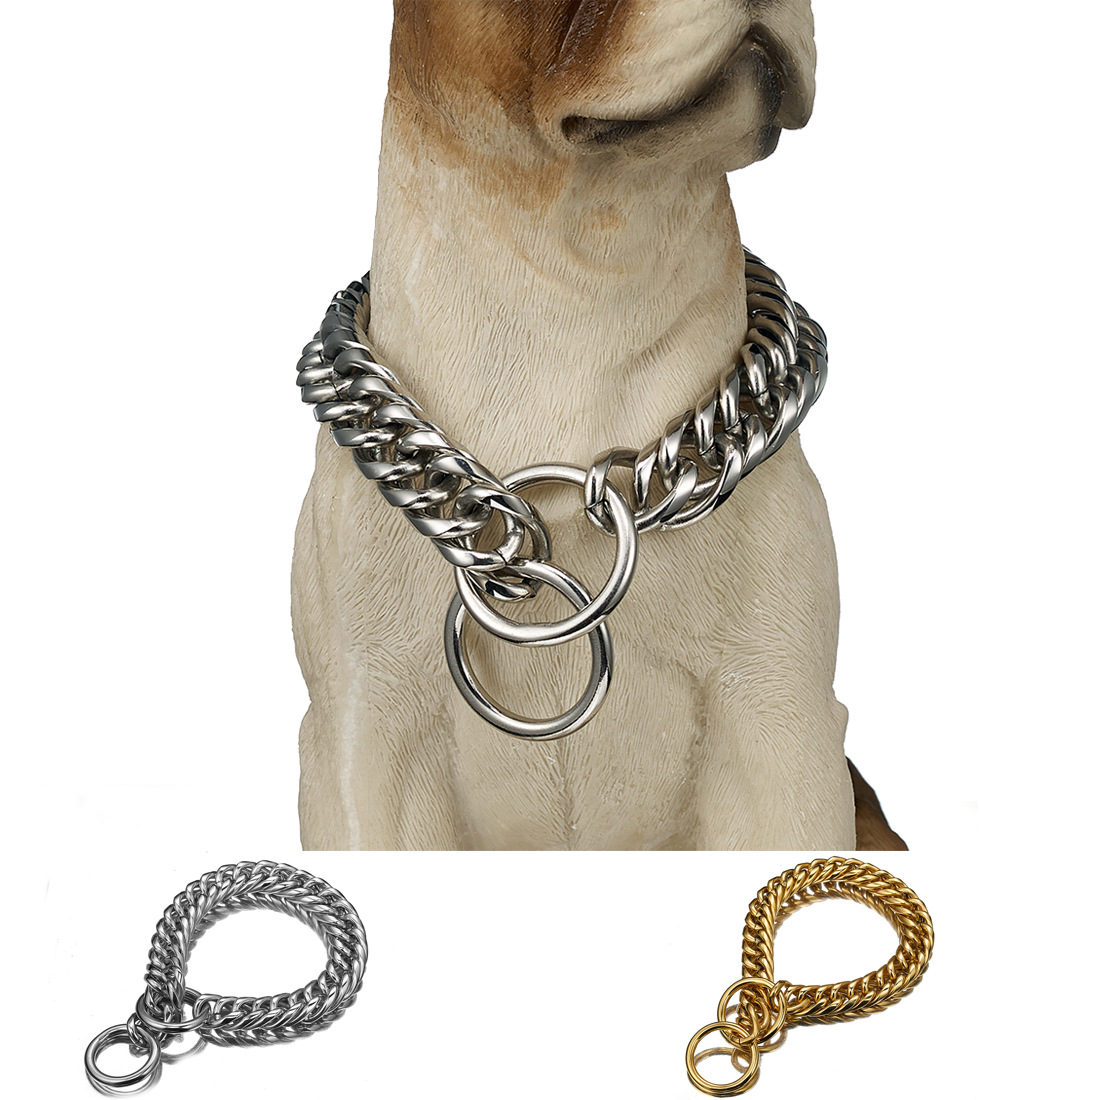 16 Mm/19mm Two-Button Pet Dog Chain P Pendant Stainless Steel Neck Ring Hand Holding Rope One-piece Supply Of Goods